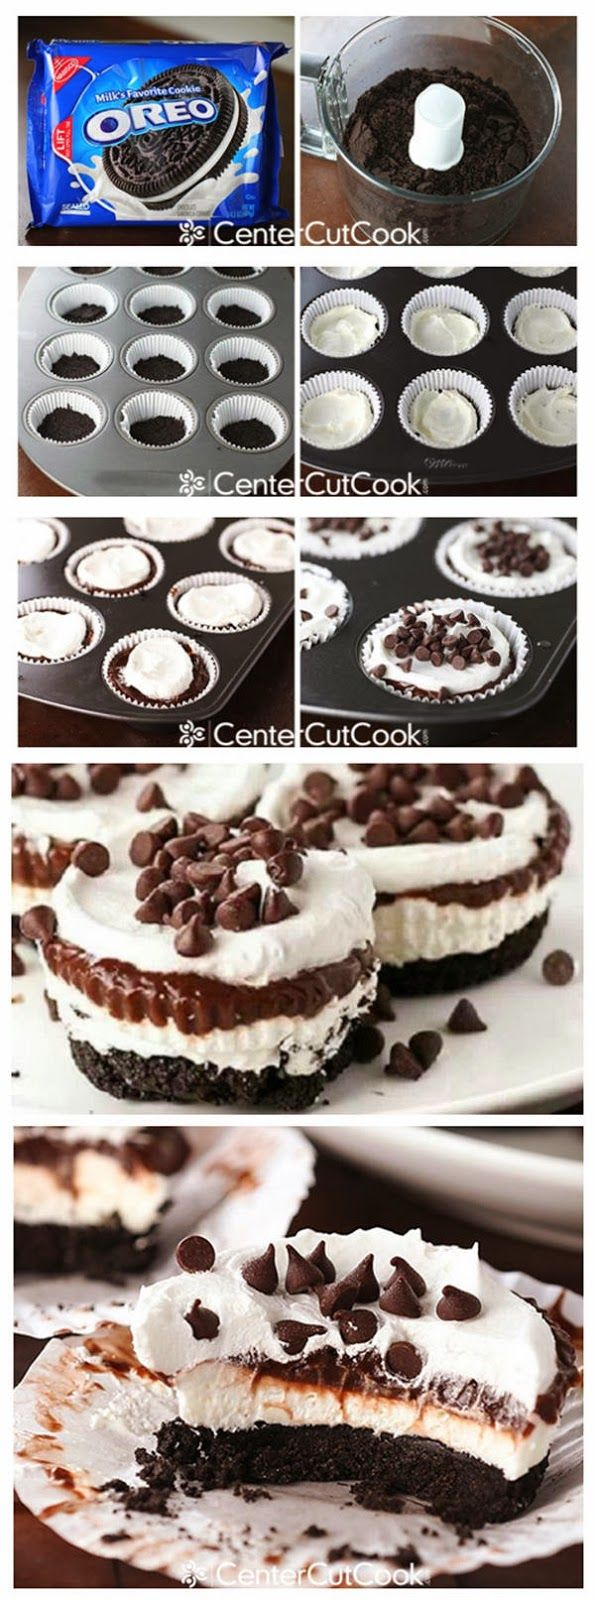 Chocolate Lasagna Cupcakes- yum! #cupcakes #cupcakeideas #cupcakerecipes #food #yummy #sweet #delicious #cupcake